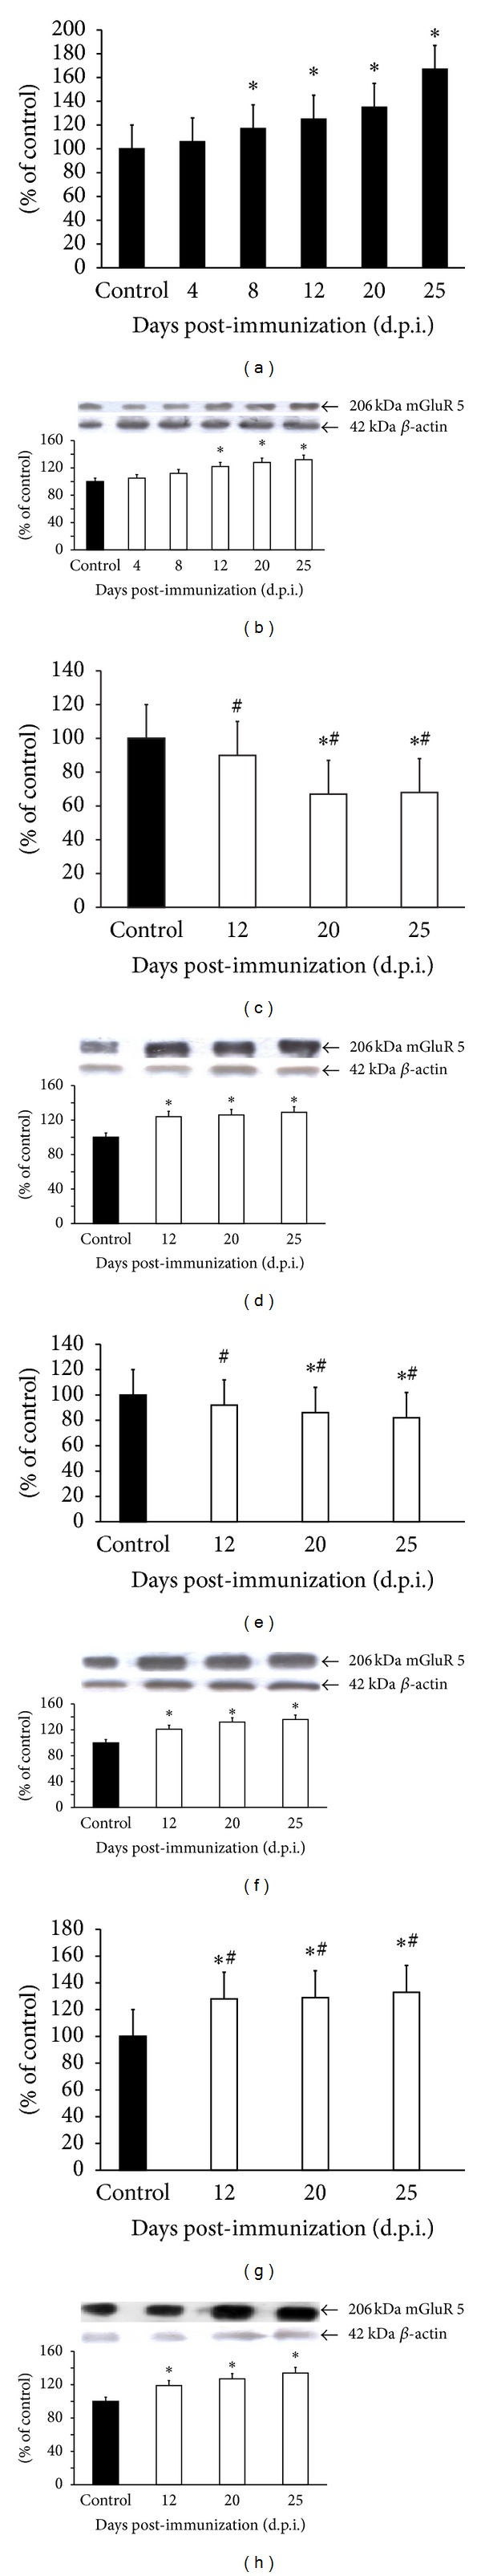 Expression of mGluR5 mRNA (a, c, e, and g) and protein (b, d, f, and h) in forebrain of control rats and rats with EAE at different times post-immunization (a and b) and after therapeutic treatment with antagonists of glutamate receptors: amantadine (c and d), memantine (e and f), and MPEP (g and h). Total RNA was prepared from healthy control rats, rats with EAE, and rats with EAE after therapy at the indicated d.p.i. The mGluR5 mRNA levels were determined by quantitative real-time PCR (see Section 2 ) and normalized to actin. Graphs (a), (c), (e), and (g) present the results expressed as percentage of control from four independent experiments. * P